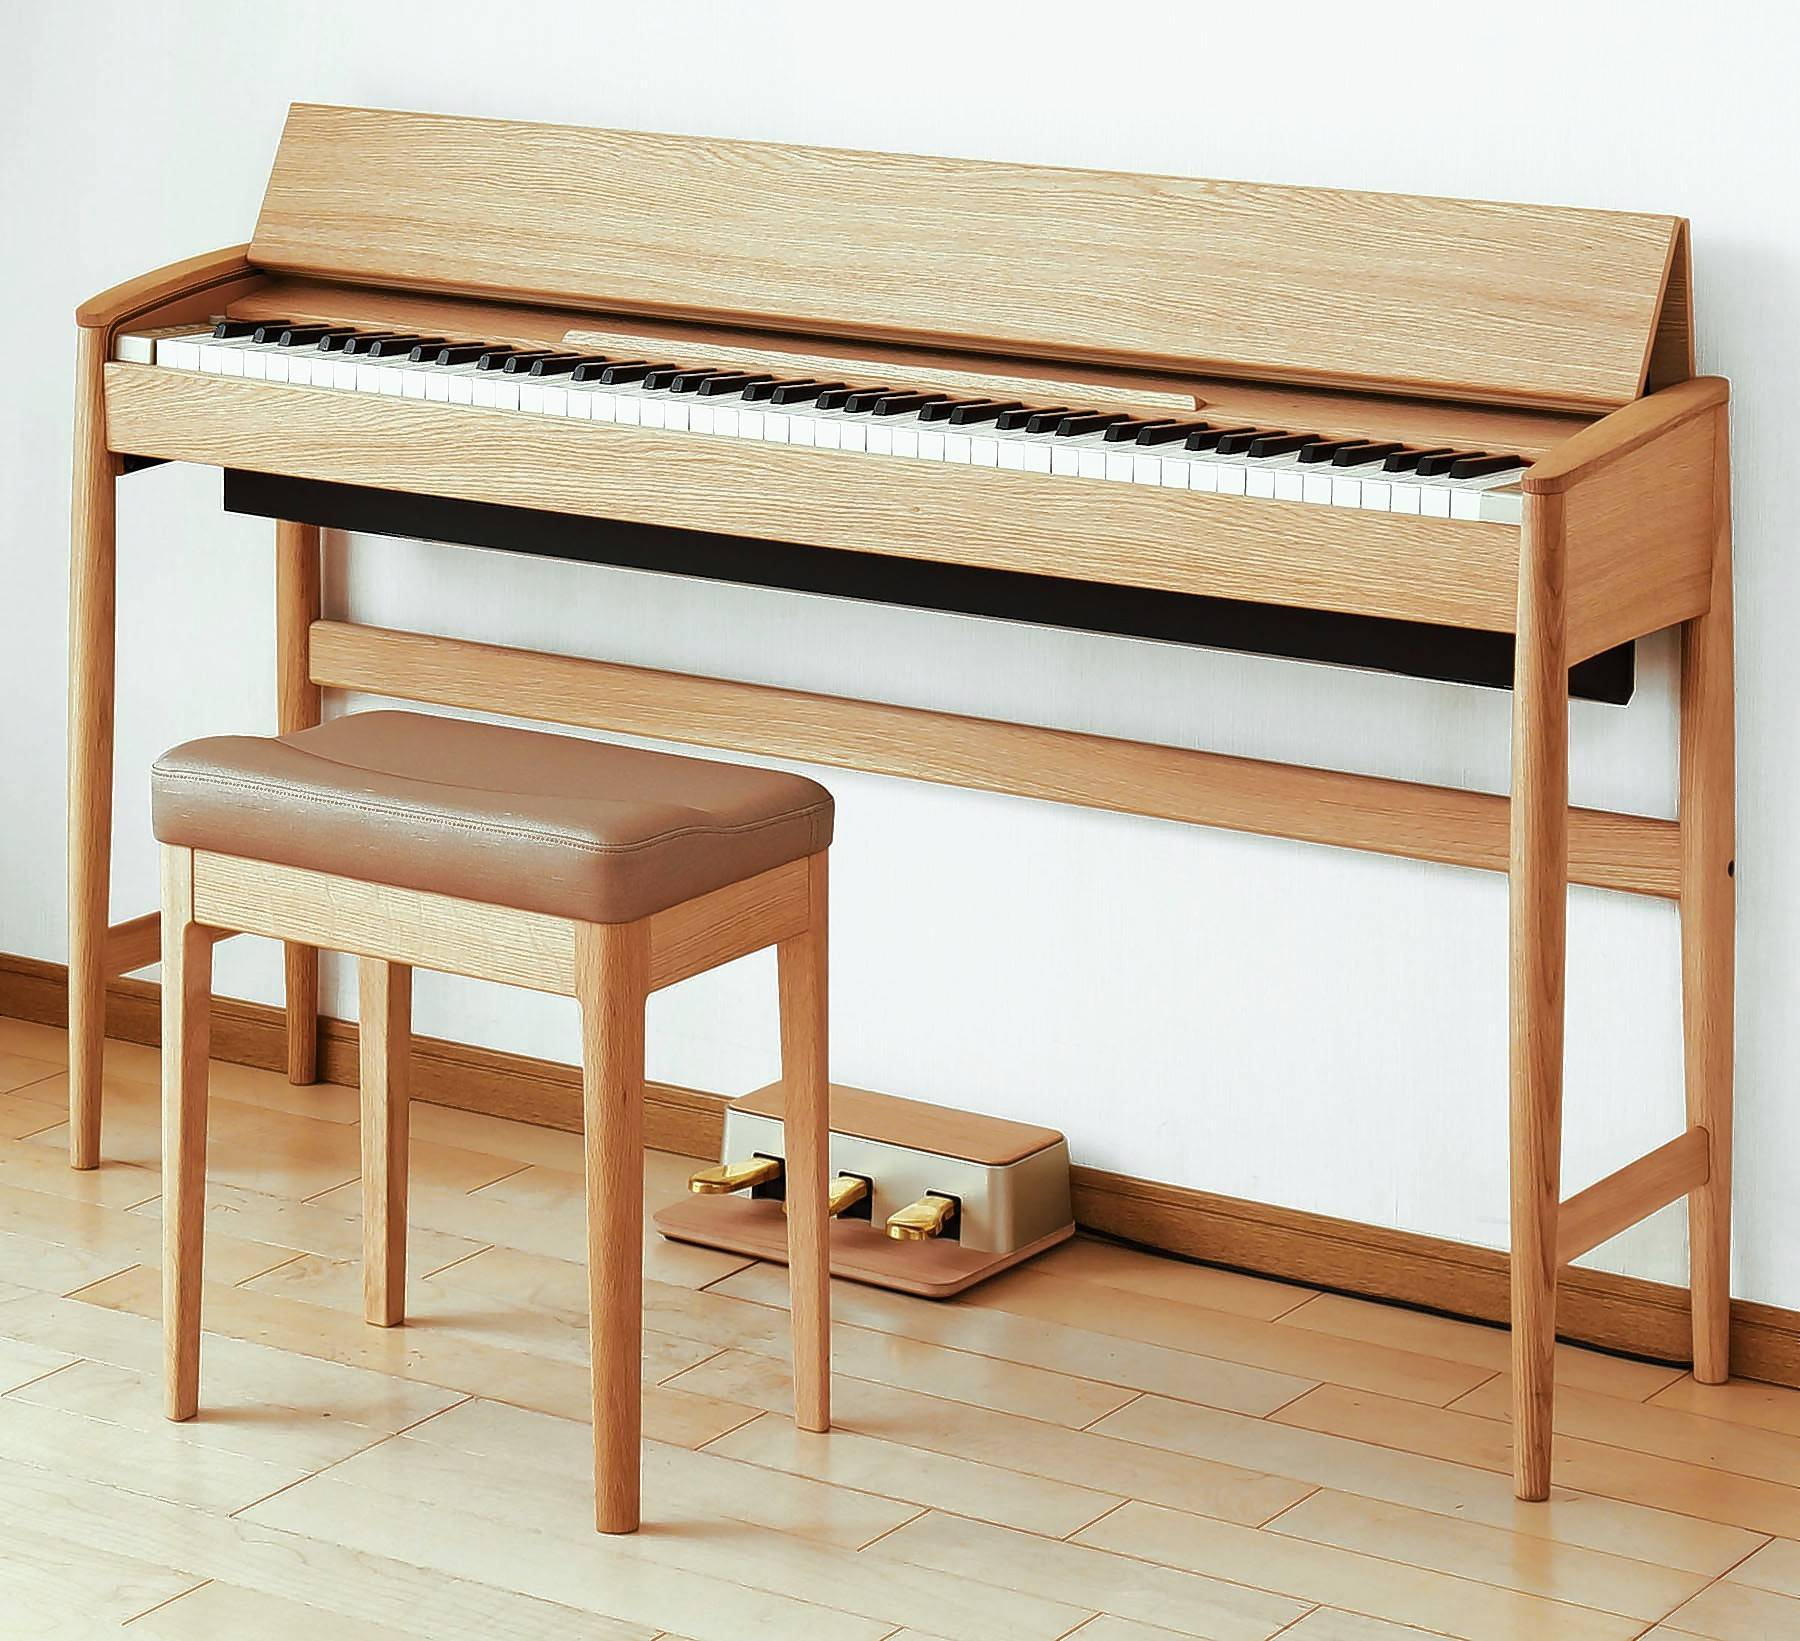 The Roland Mid-Century-Styled Piano can be found on the online furniture section of the New York City Museum of Modern Art Design Store.